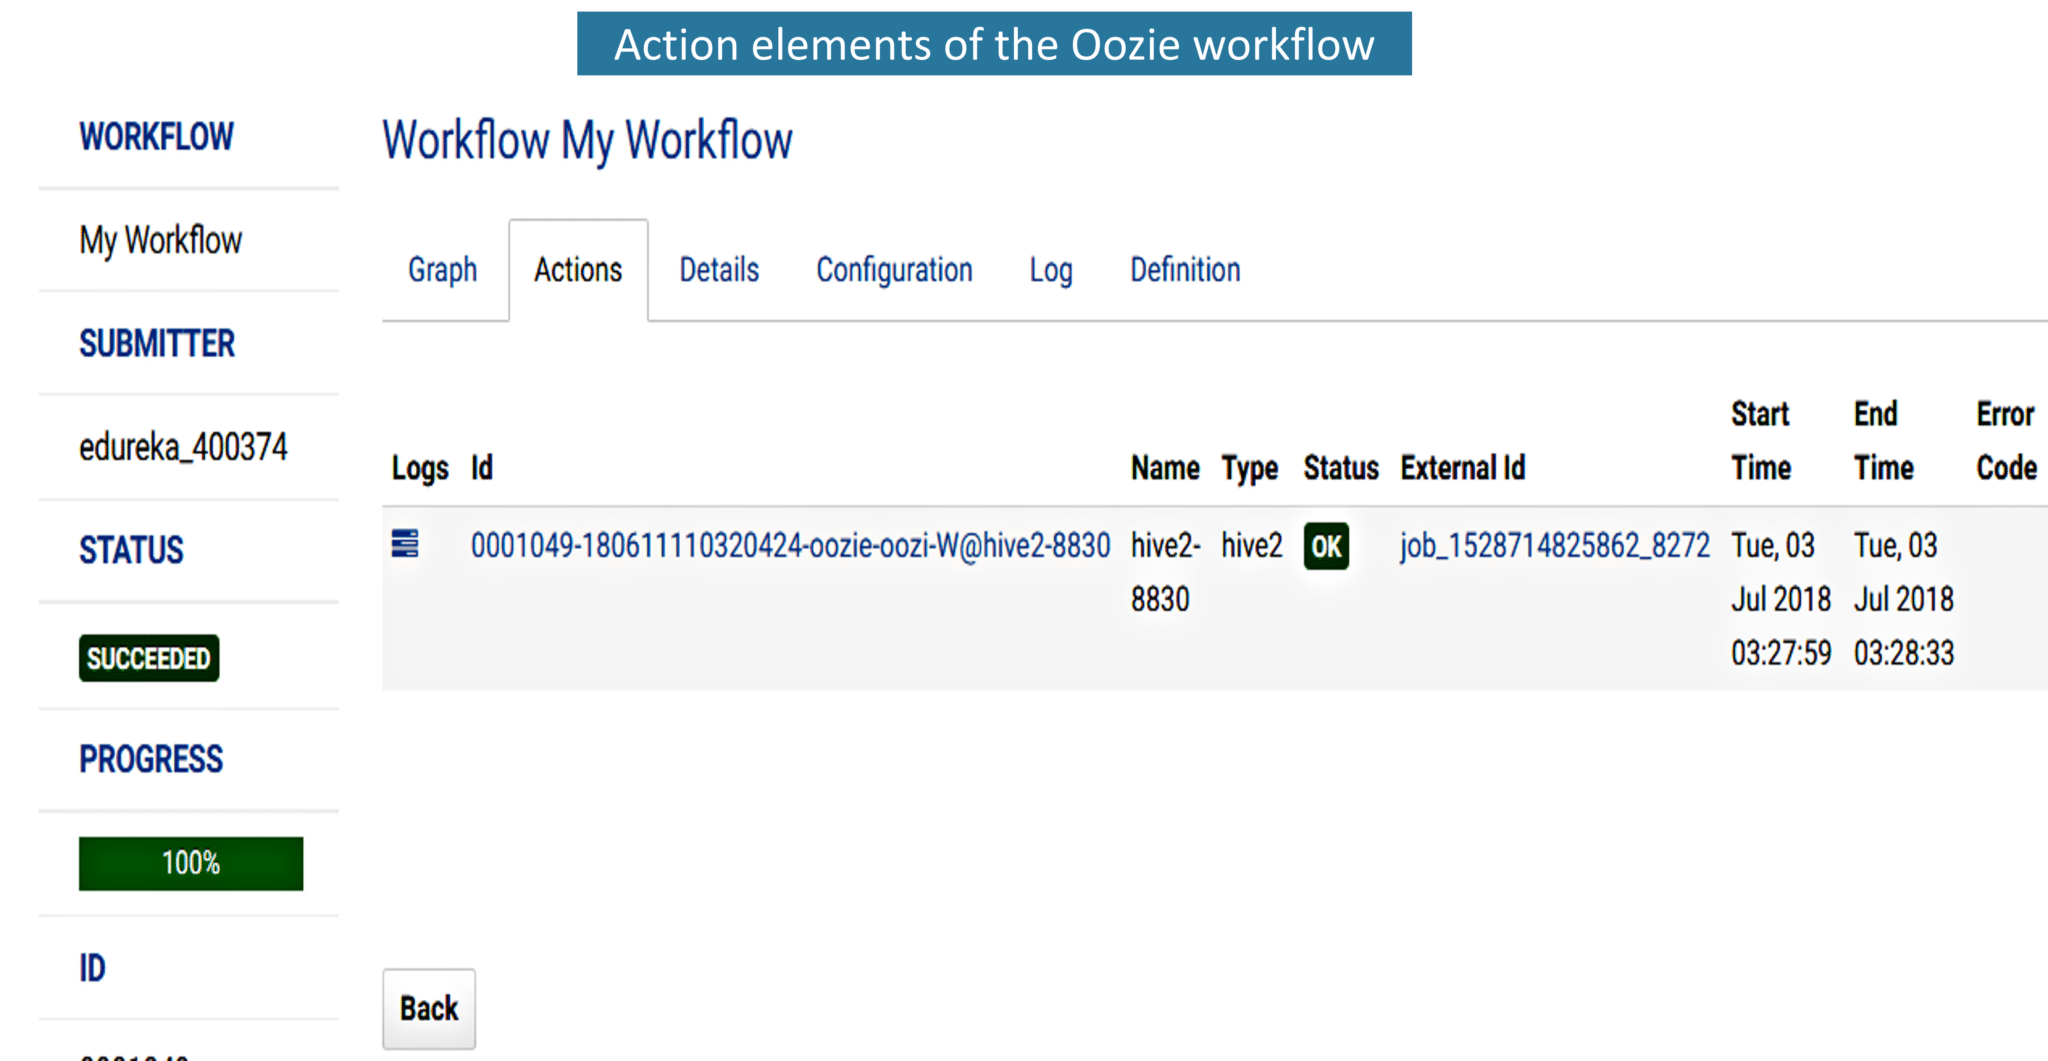 Fig: Elements present in the action tab of the Oozie workflow